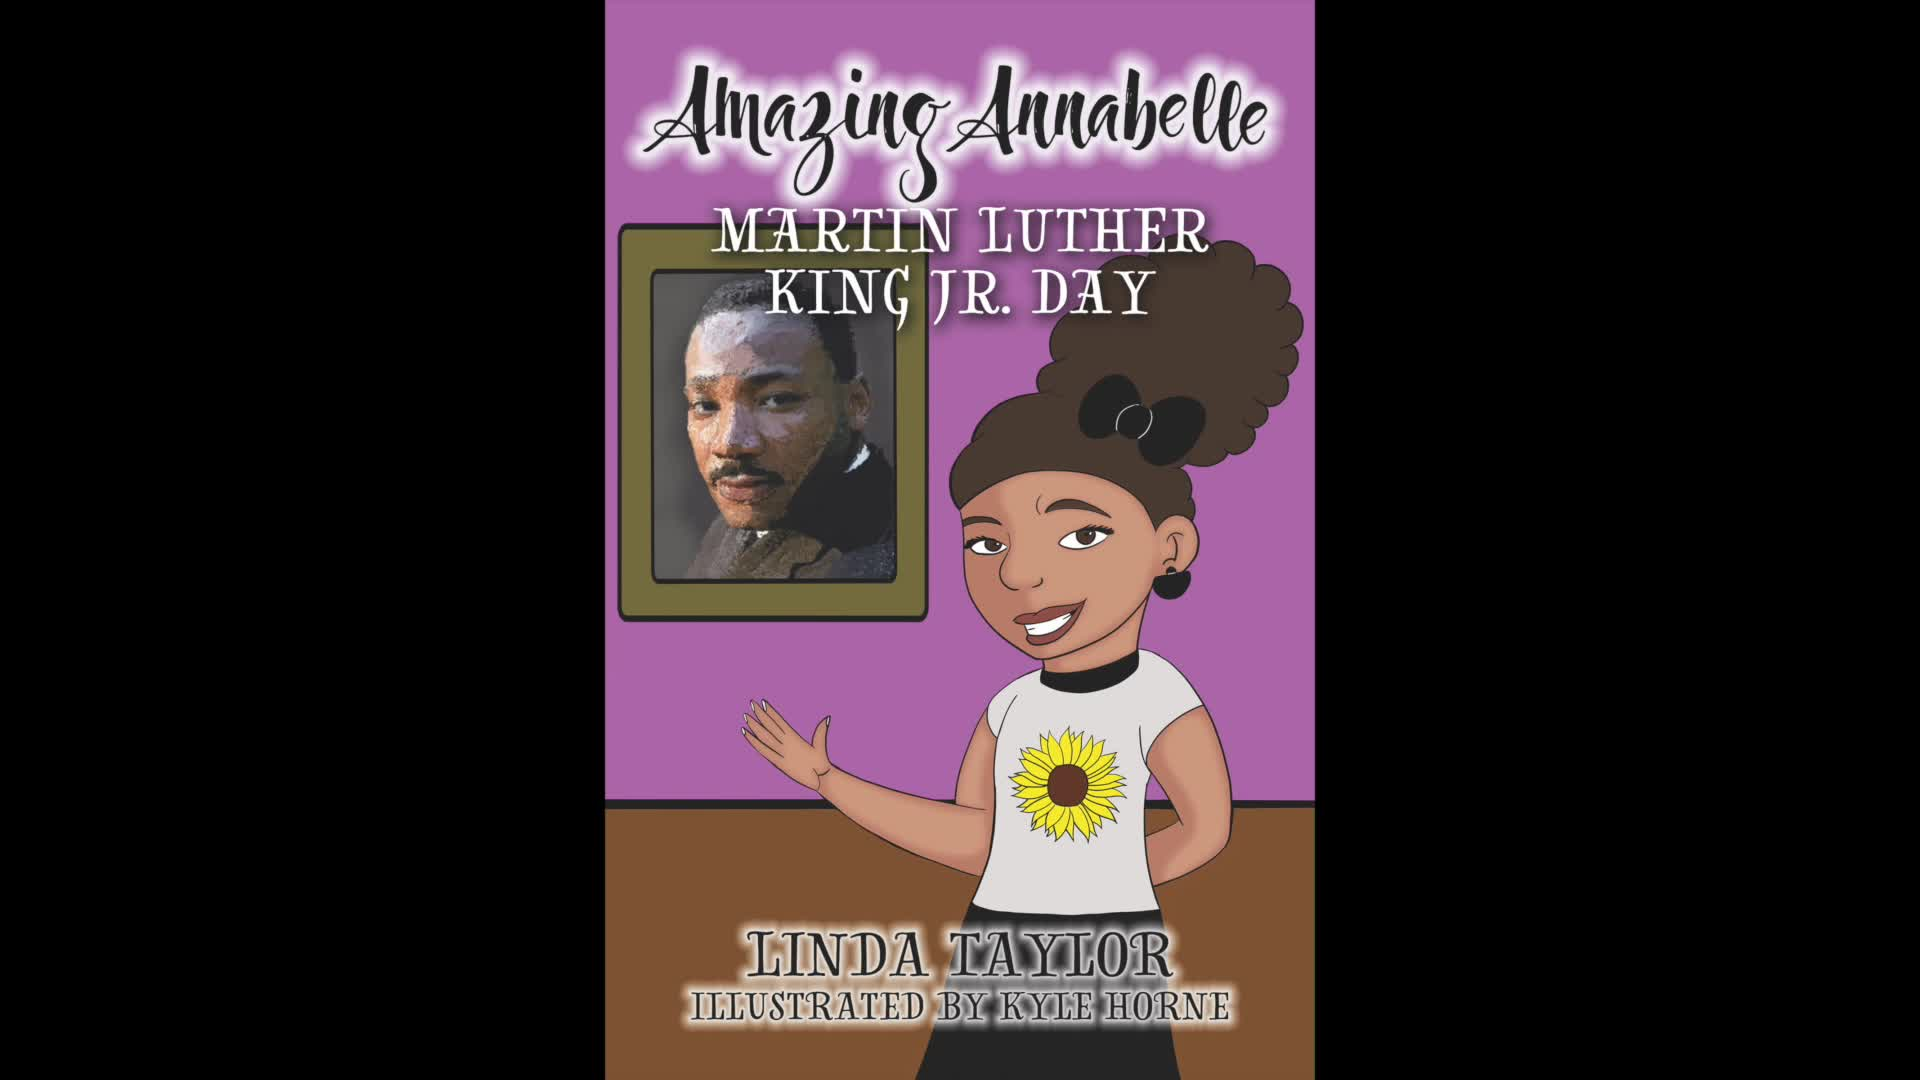 Amazing Annabelle Martin Luther King Jr Day Chapter 3